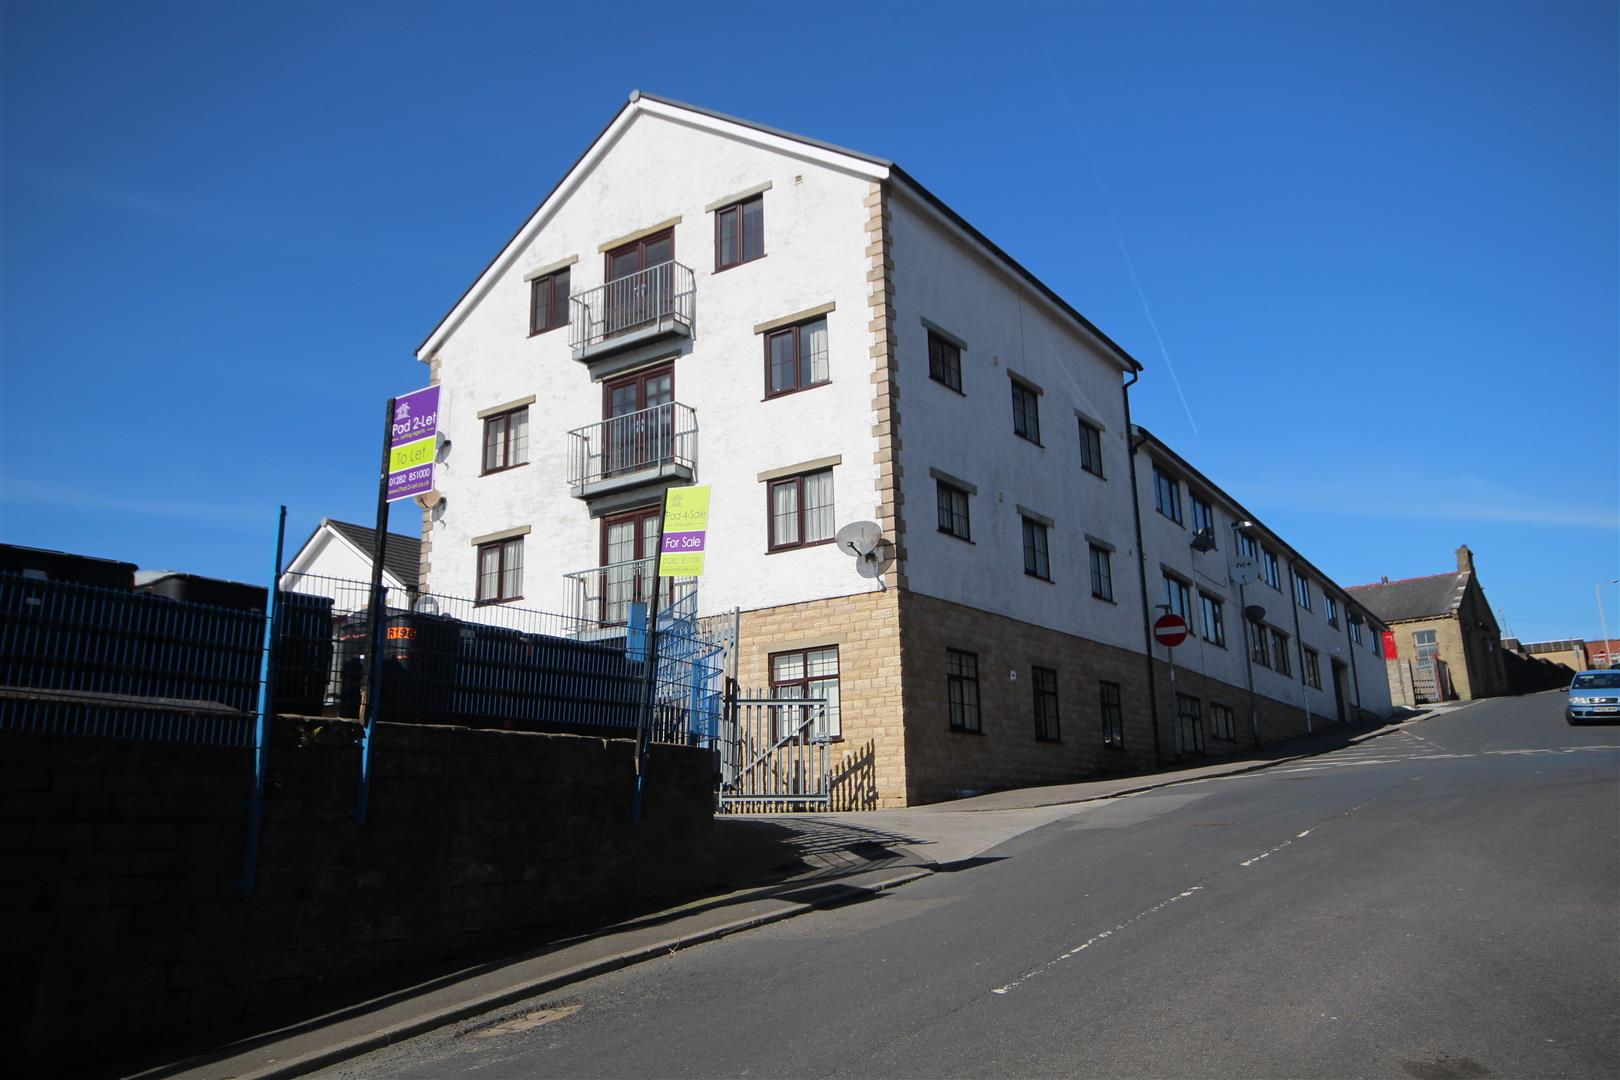 2 bedroom apartment For Sale in Colne - Main Image